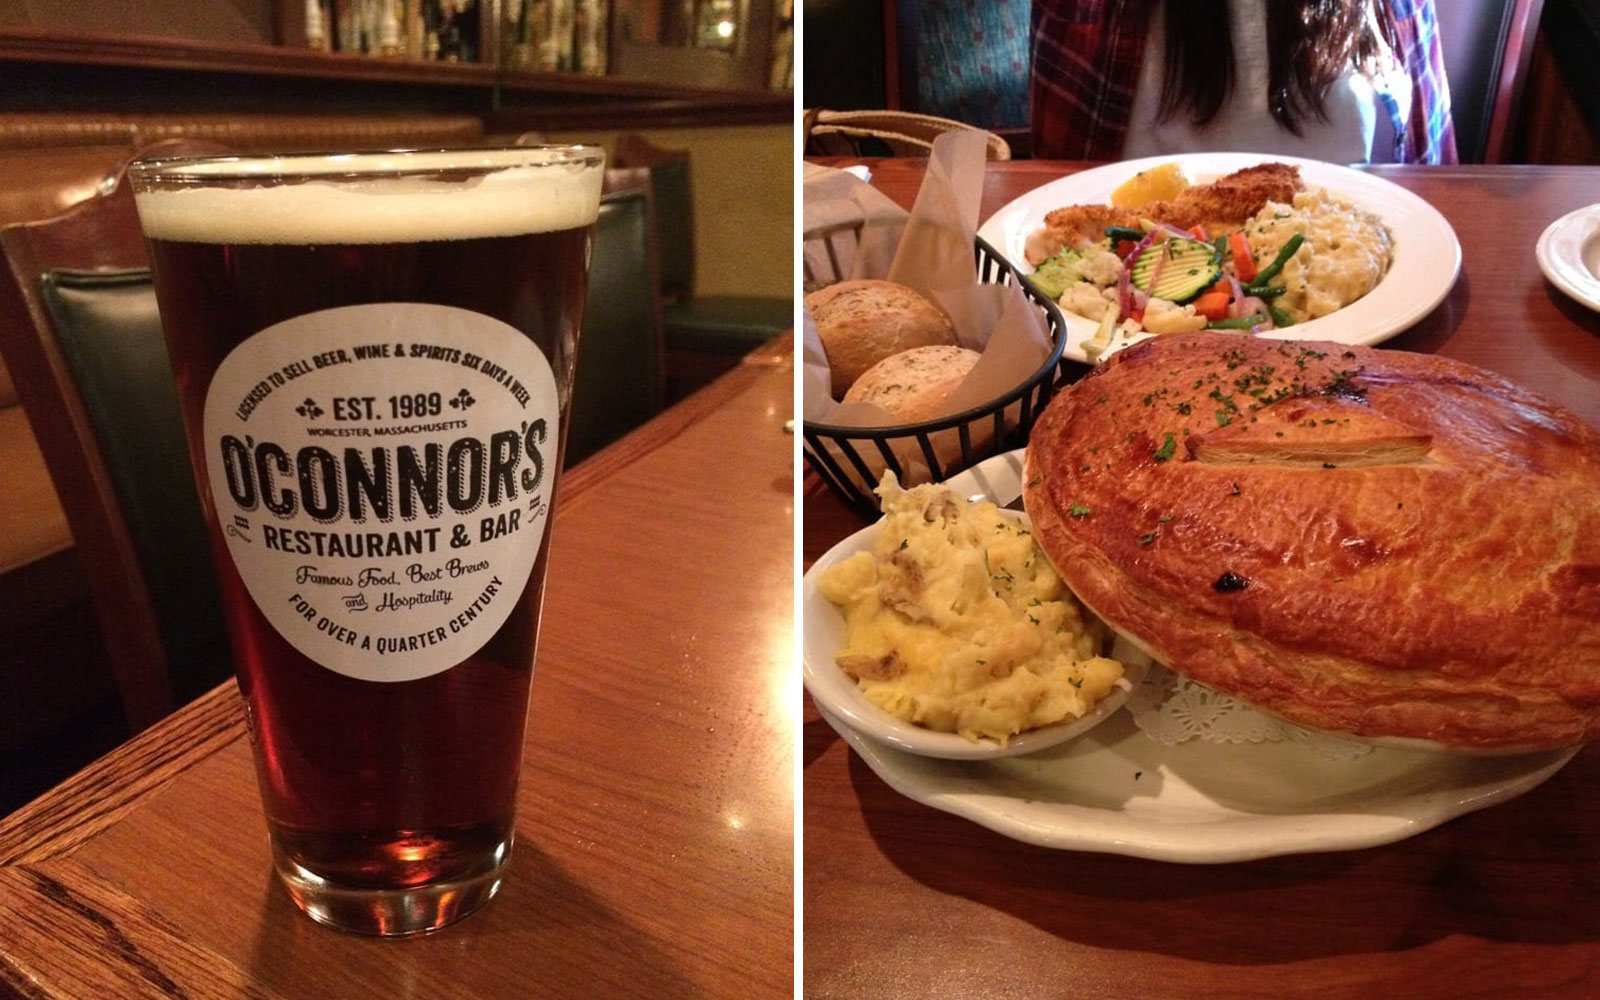 O'Connor's Restaurant & Bar, Worcester, Massachusetts